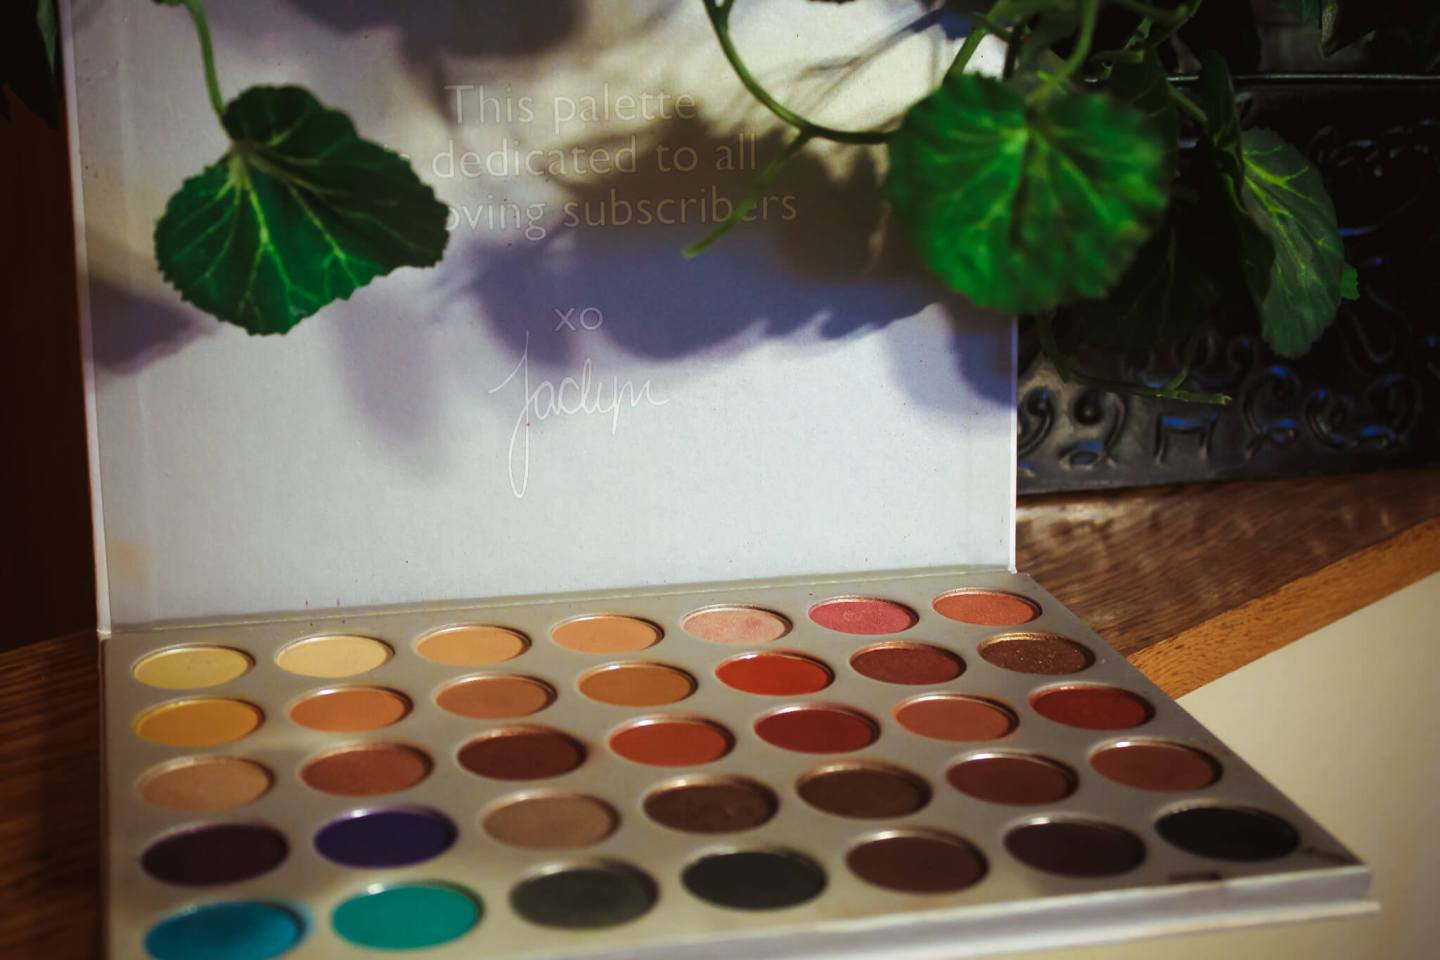 Did Morphe Change the Formula on the Original Jaclyn Hill Palette? 1